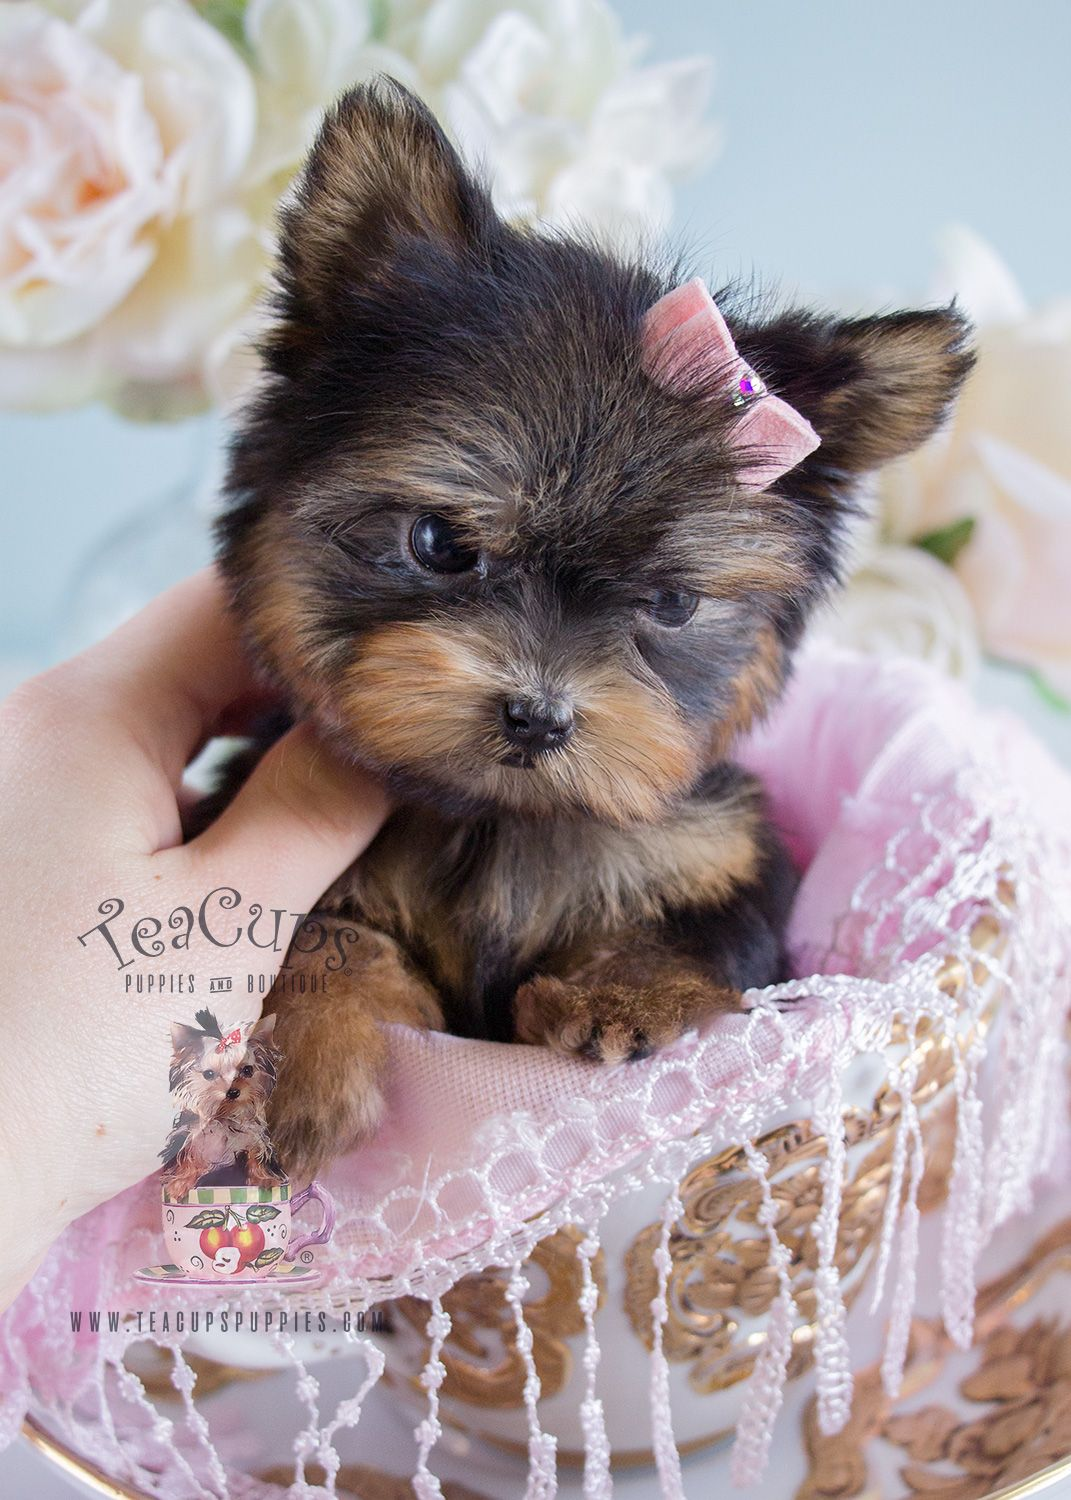 Teacup Yorkie Puppy Teacup Yorkie Puppy Teacup Puppies Yorkie